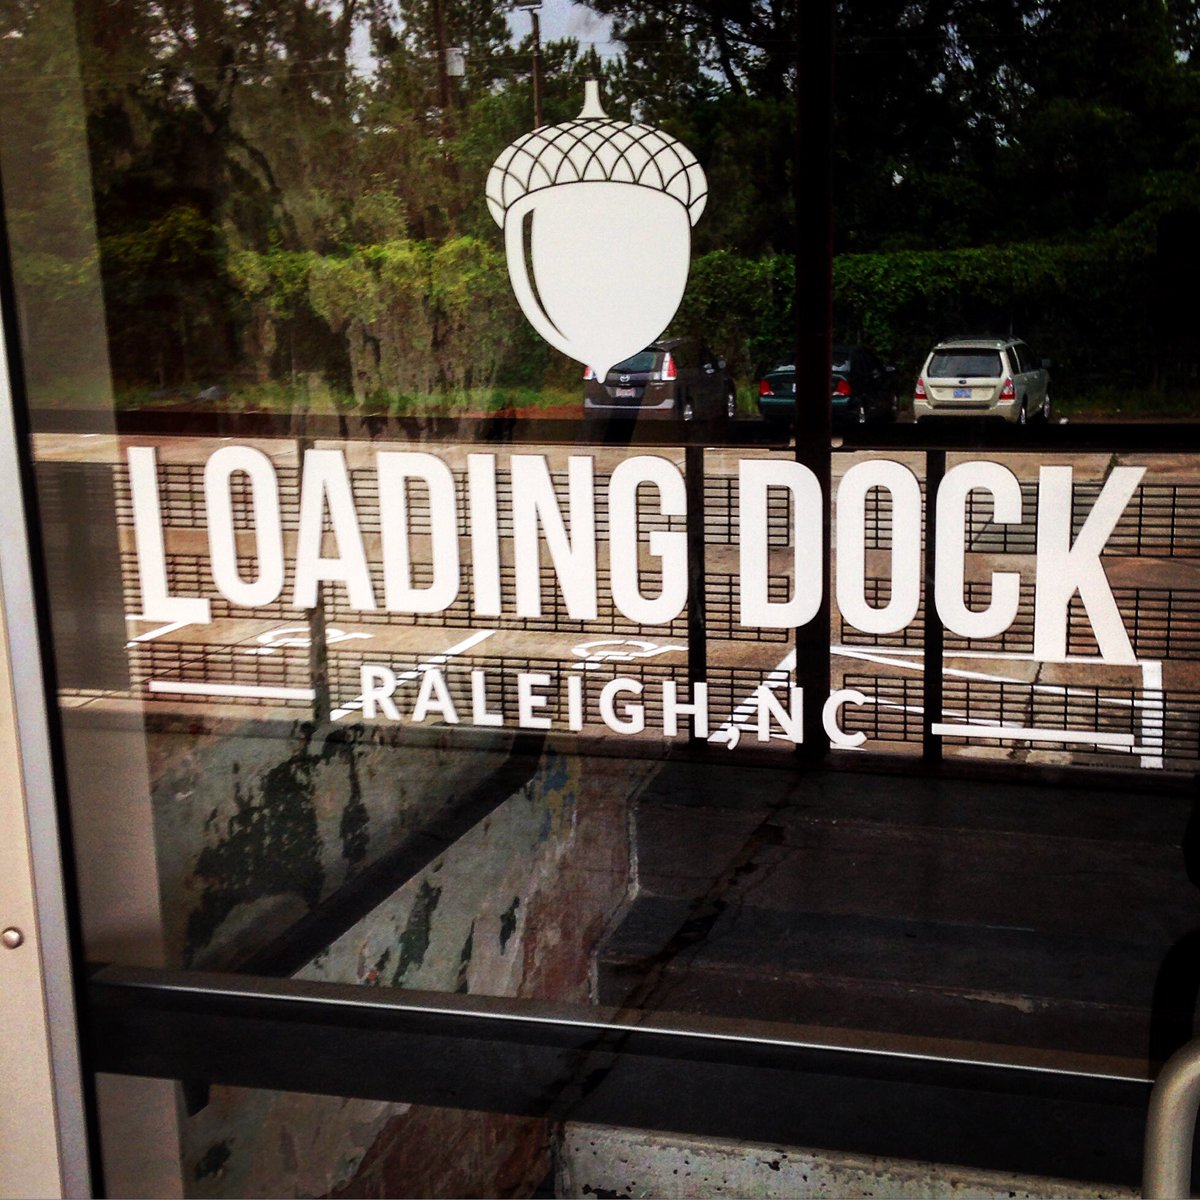 Raleigh's newest coworking space is officially open. Looking for a great spot to work? Check out @LoadingDockRal https://t.co/46mpDLoi0u